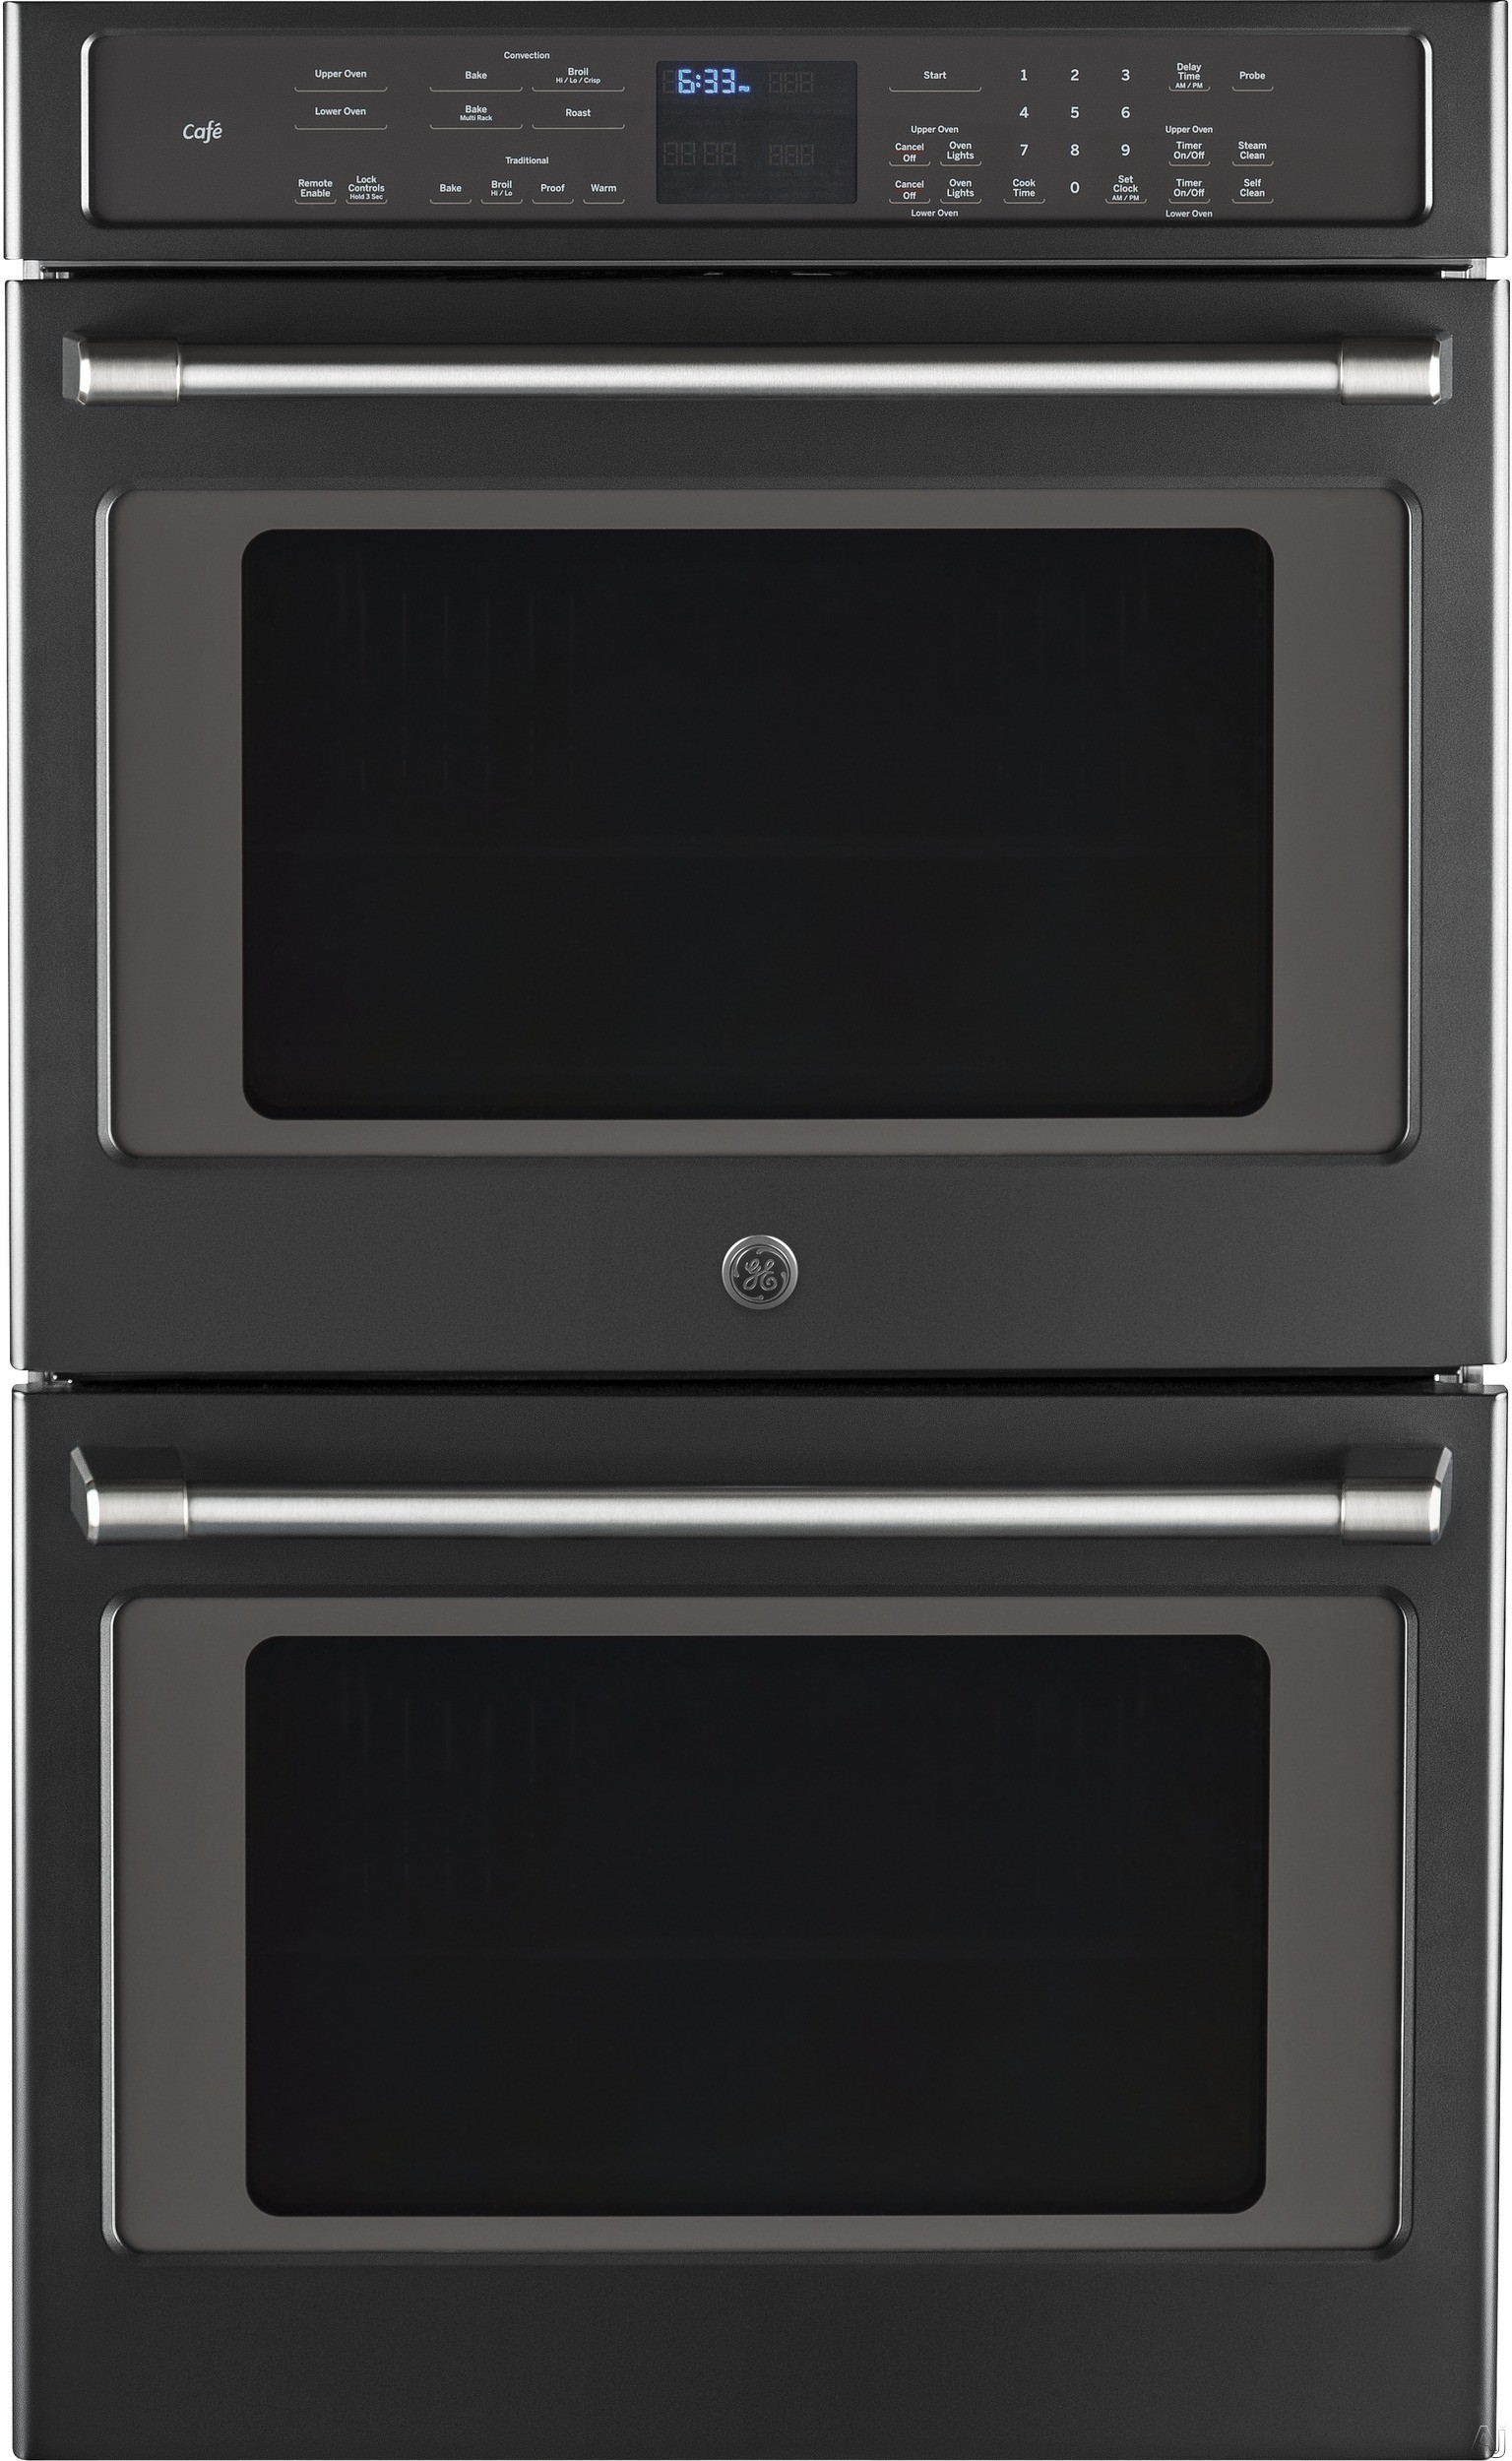 ge cafe series ct9550ekds 30 inch double wall oven with 10 0 cu ft capacity true european. Black Bedroom Furniture Sets. Home Design Ideas